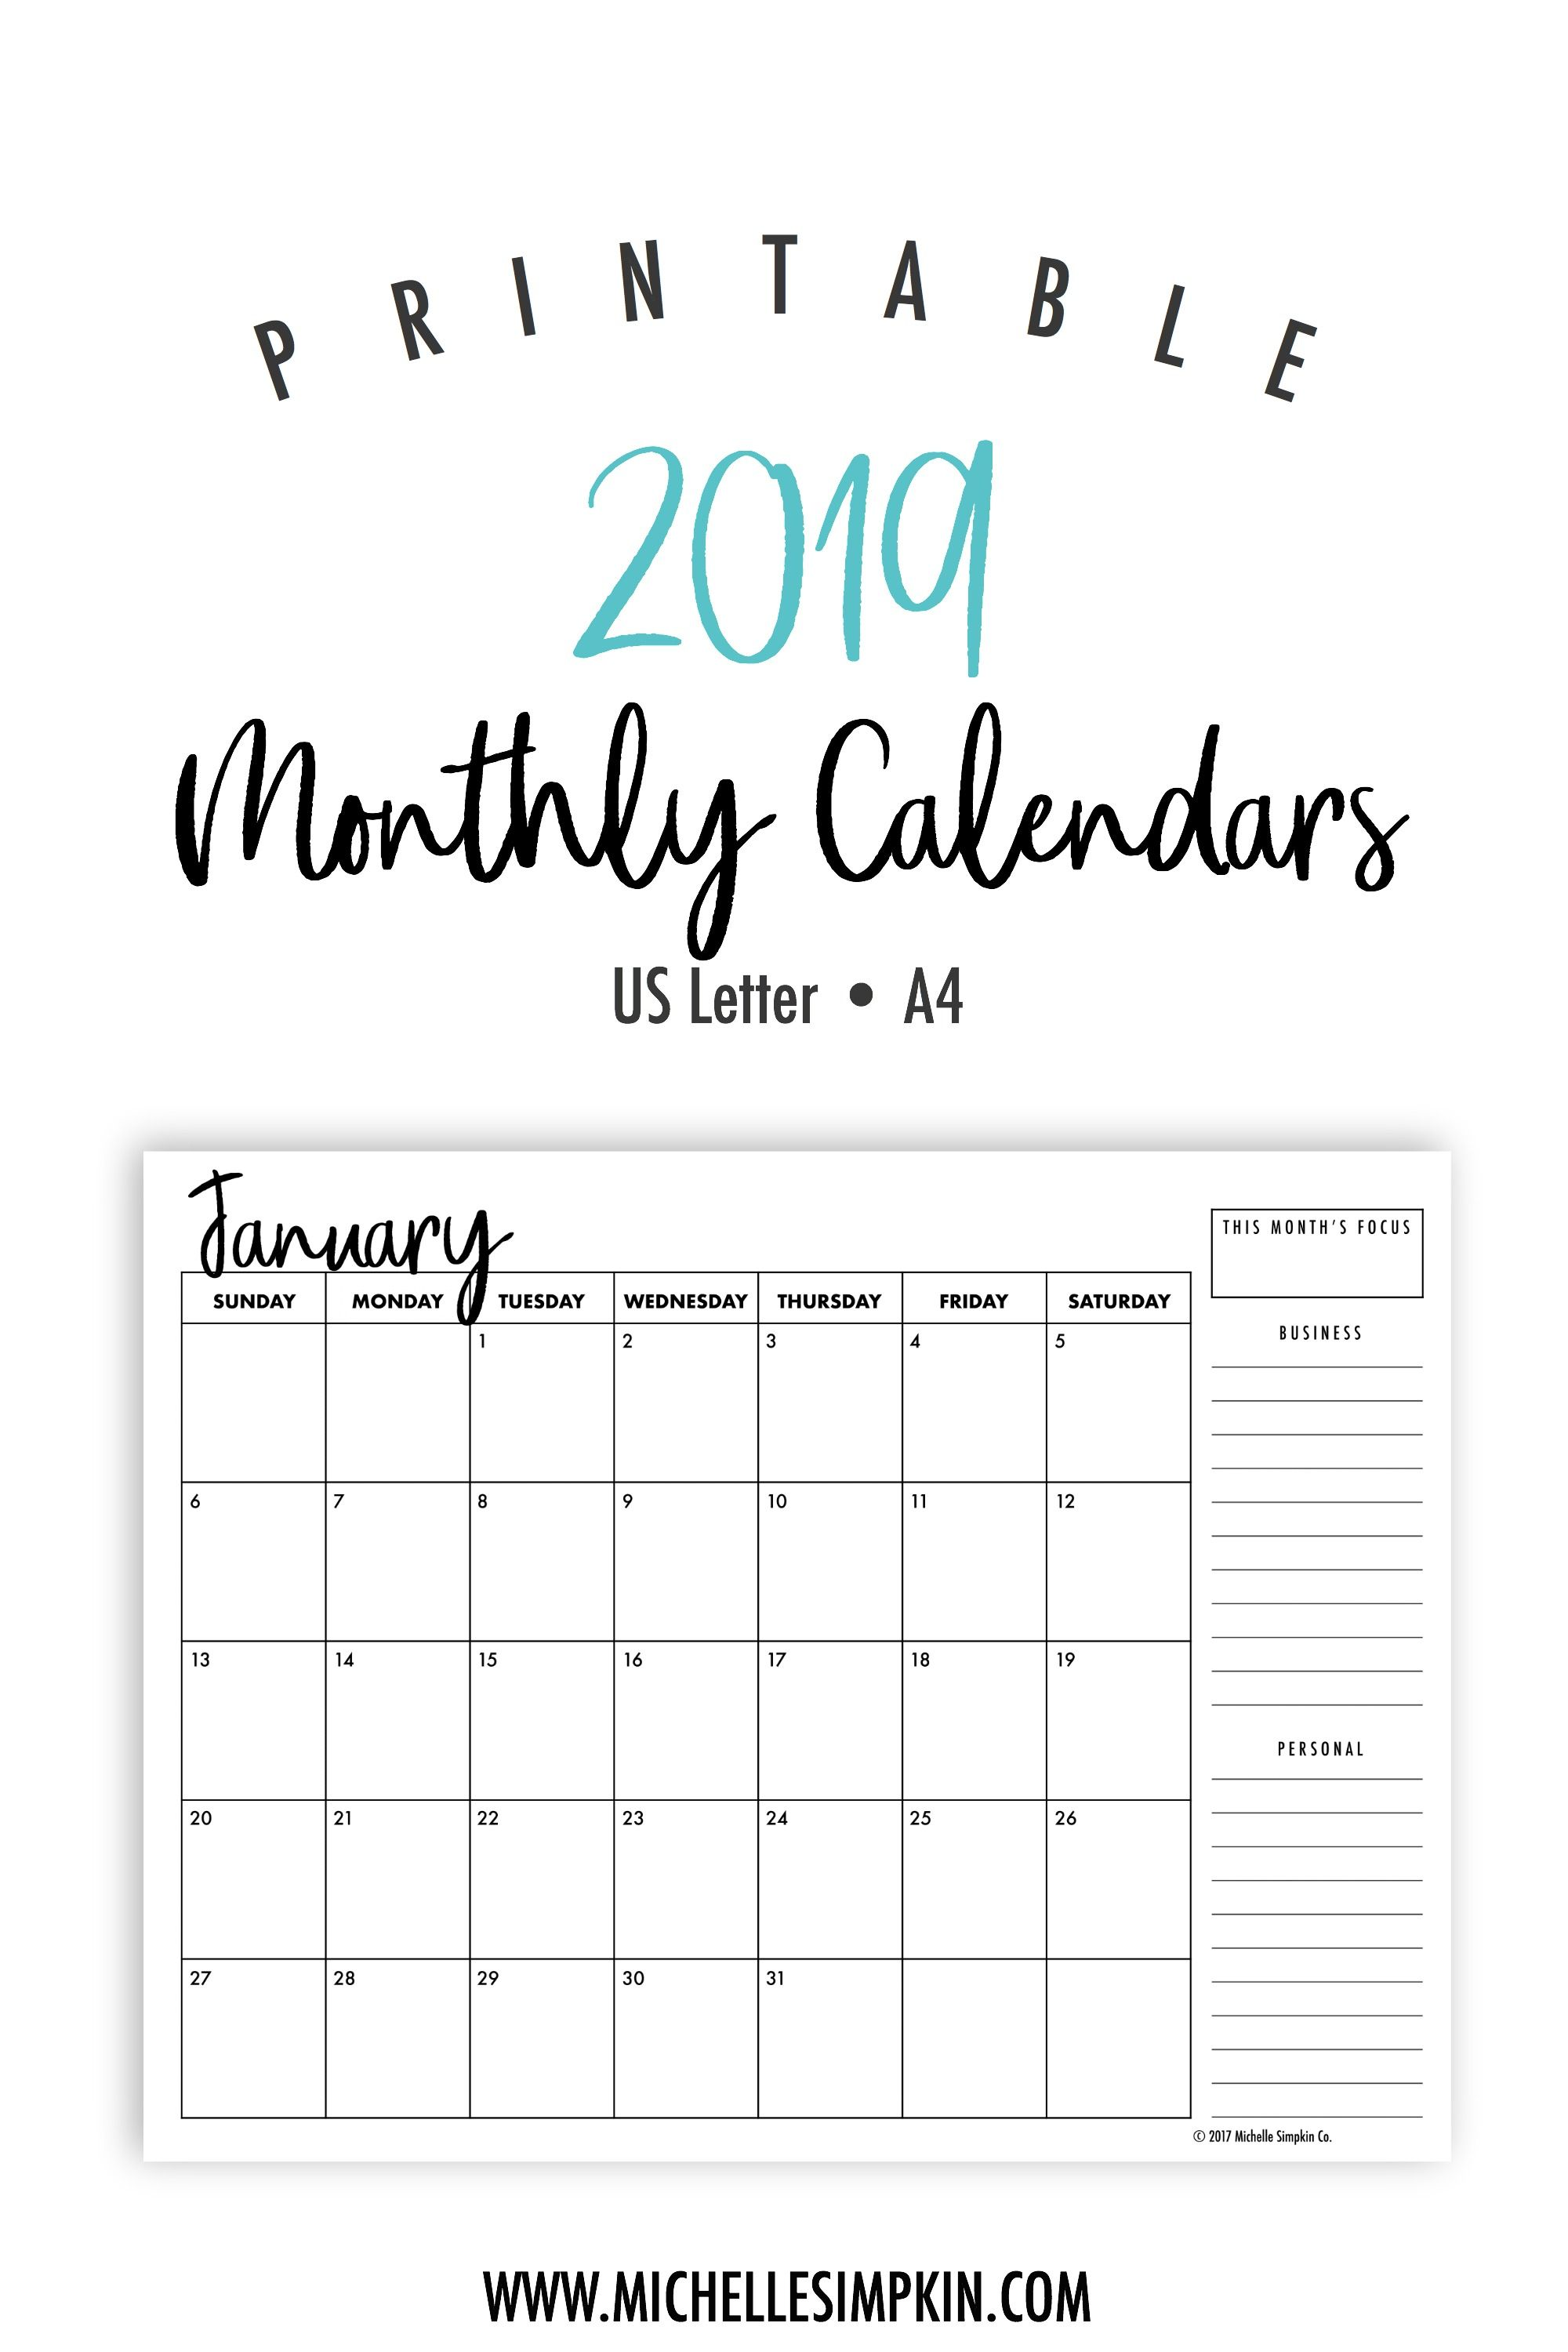 2019 Calendars Printable 2019 Printable Monthly Calendars • Landscape • US Letter • A4